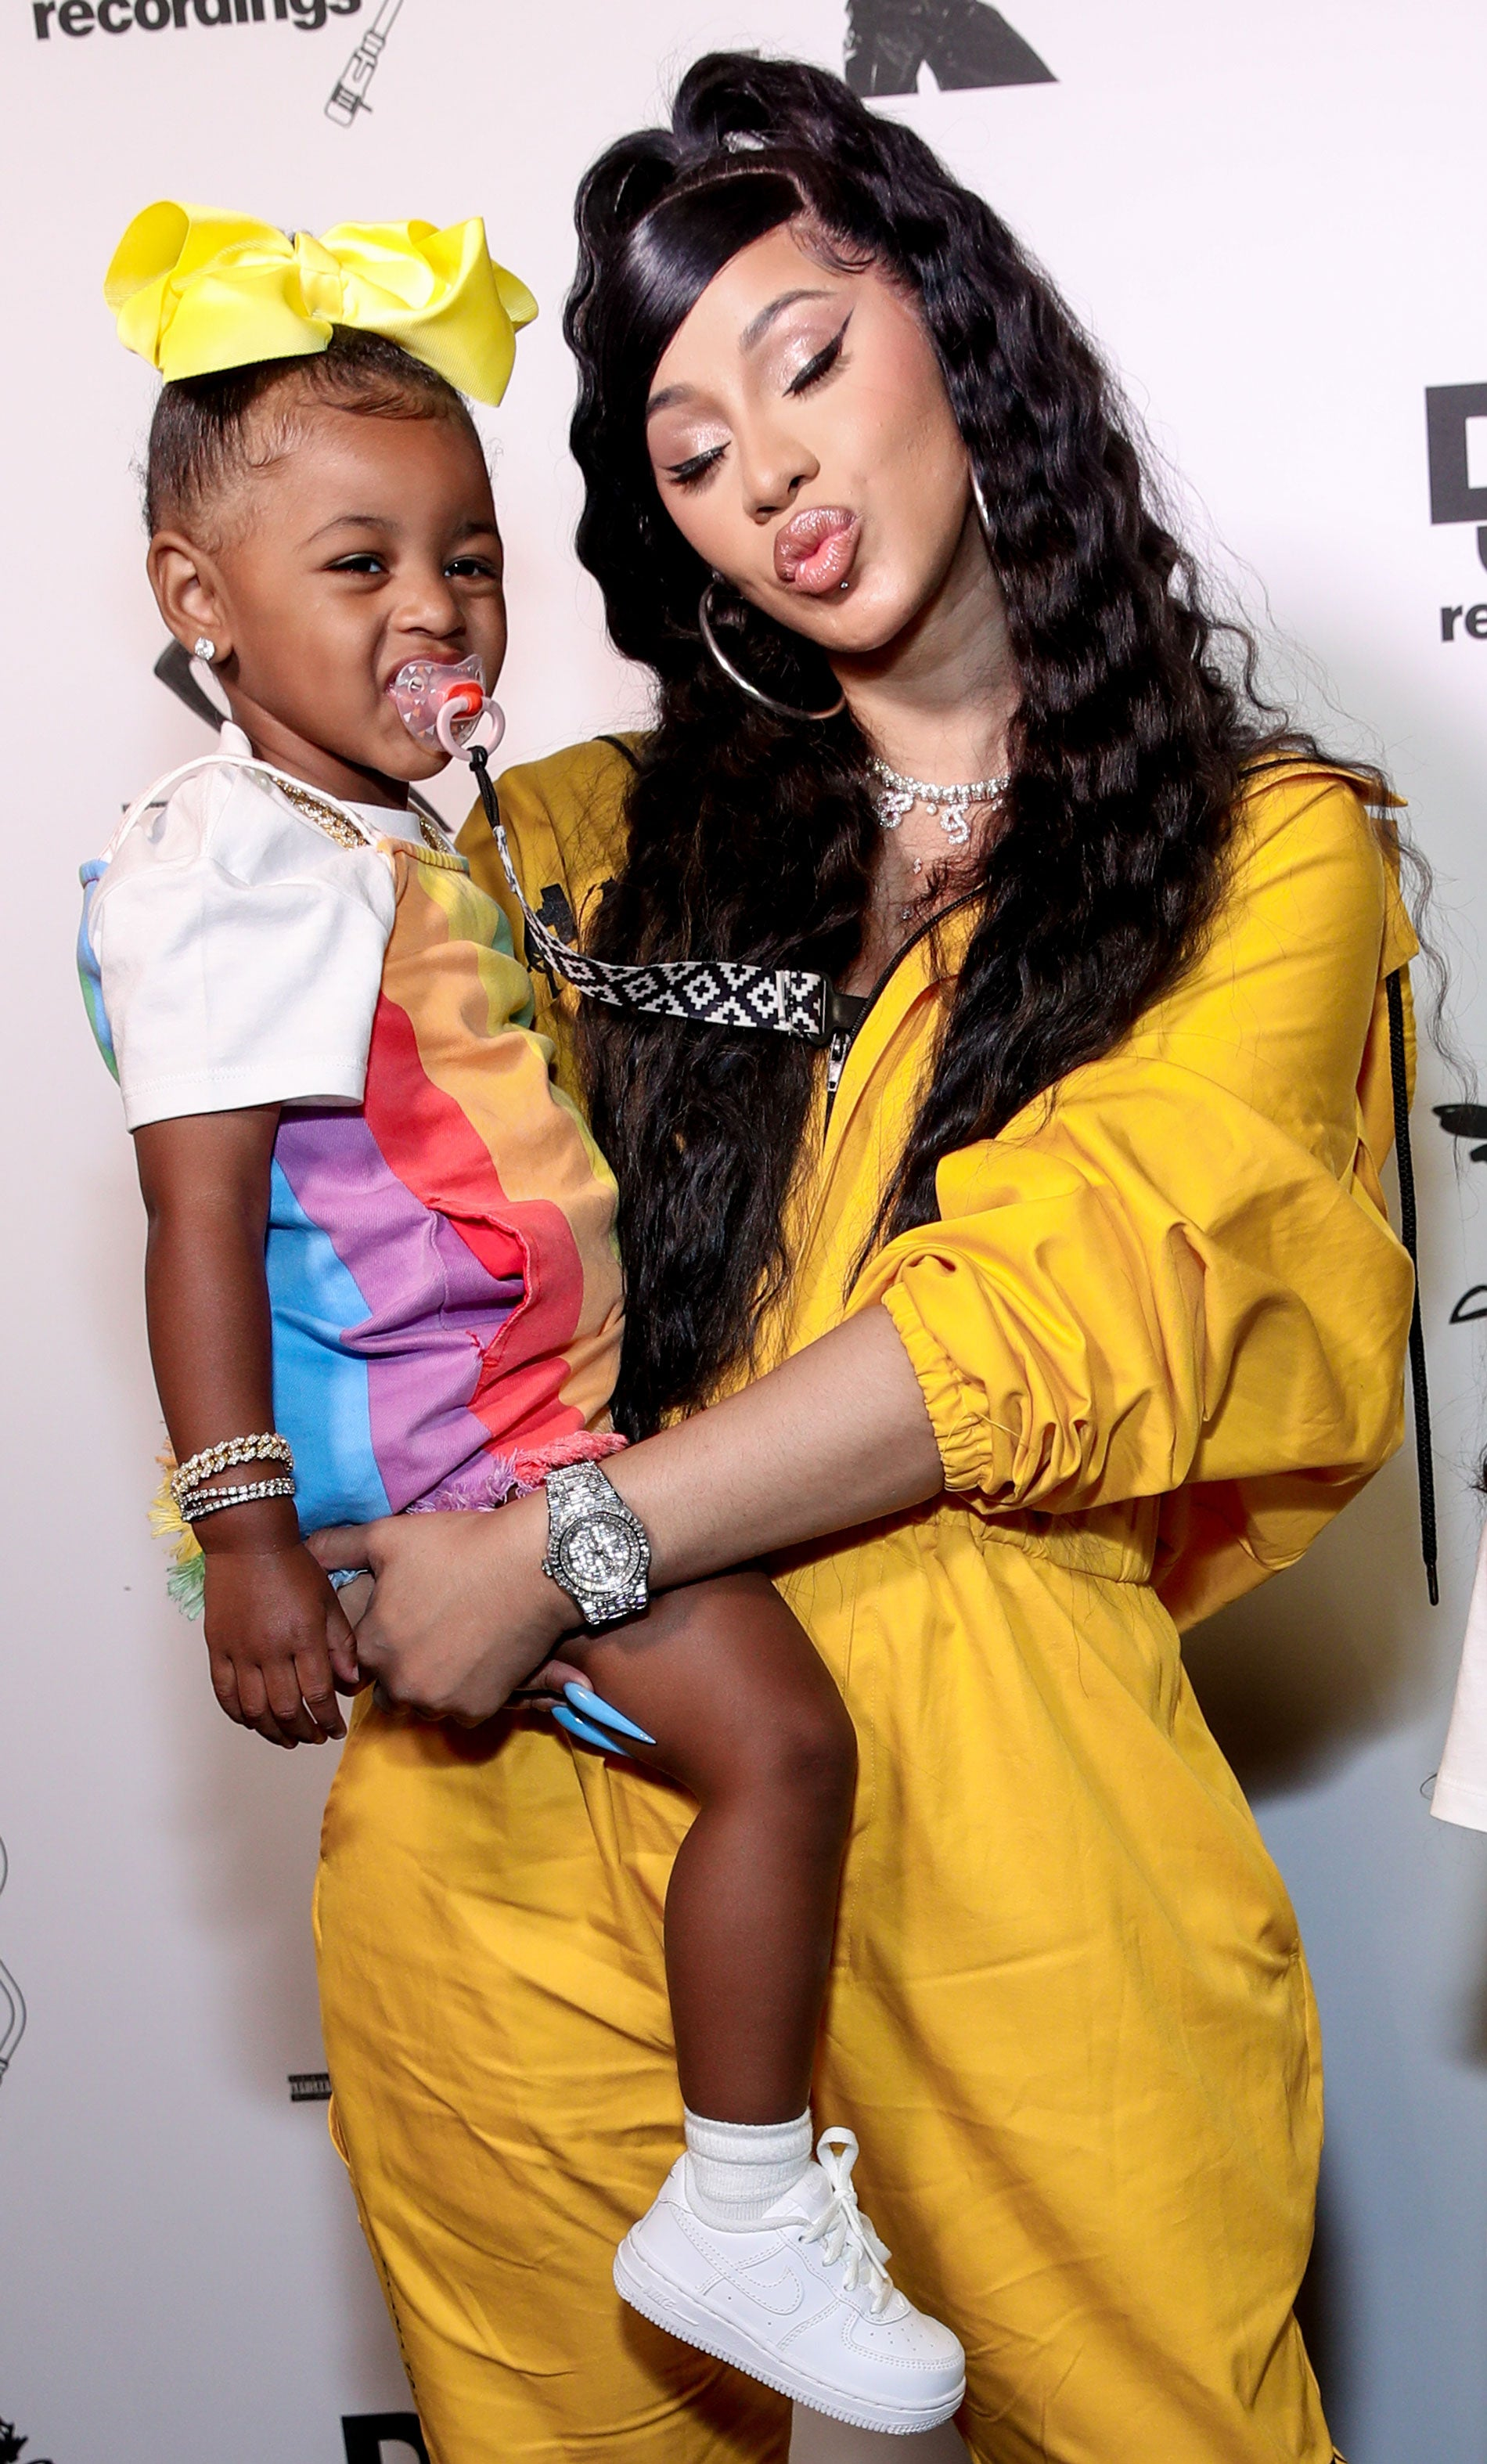 Offset Buys Daughter Kulture A Birkin Bag For Her 2nd Birthday